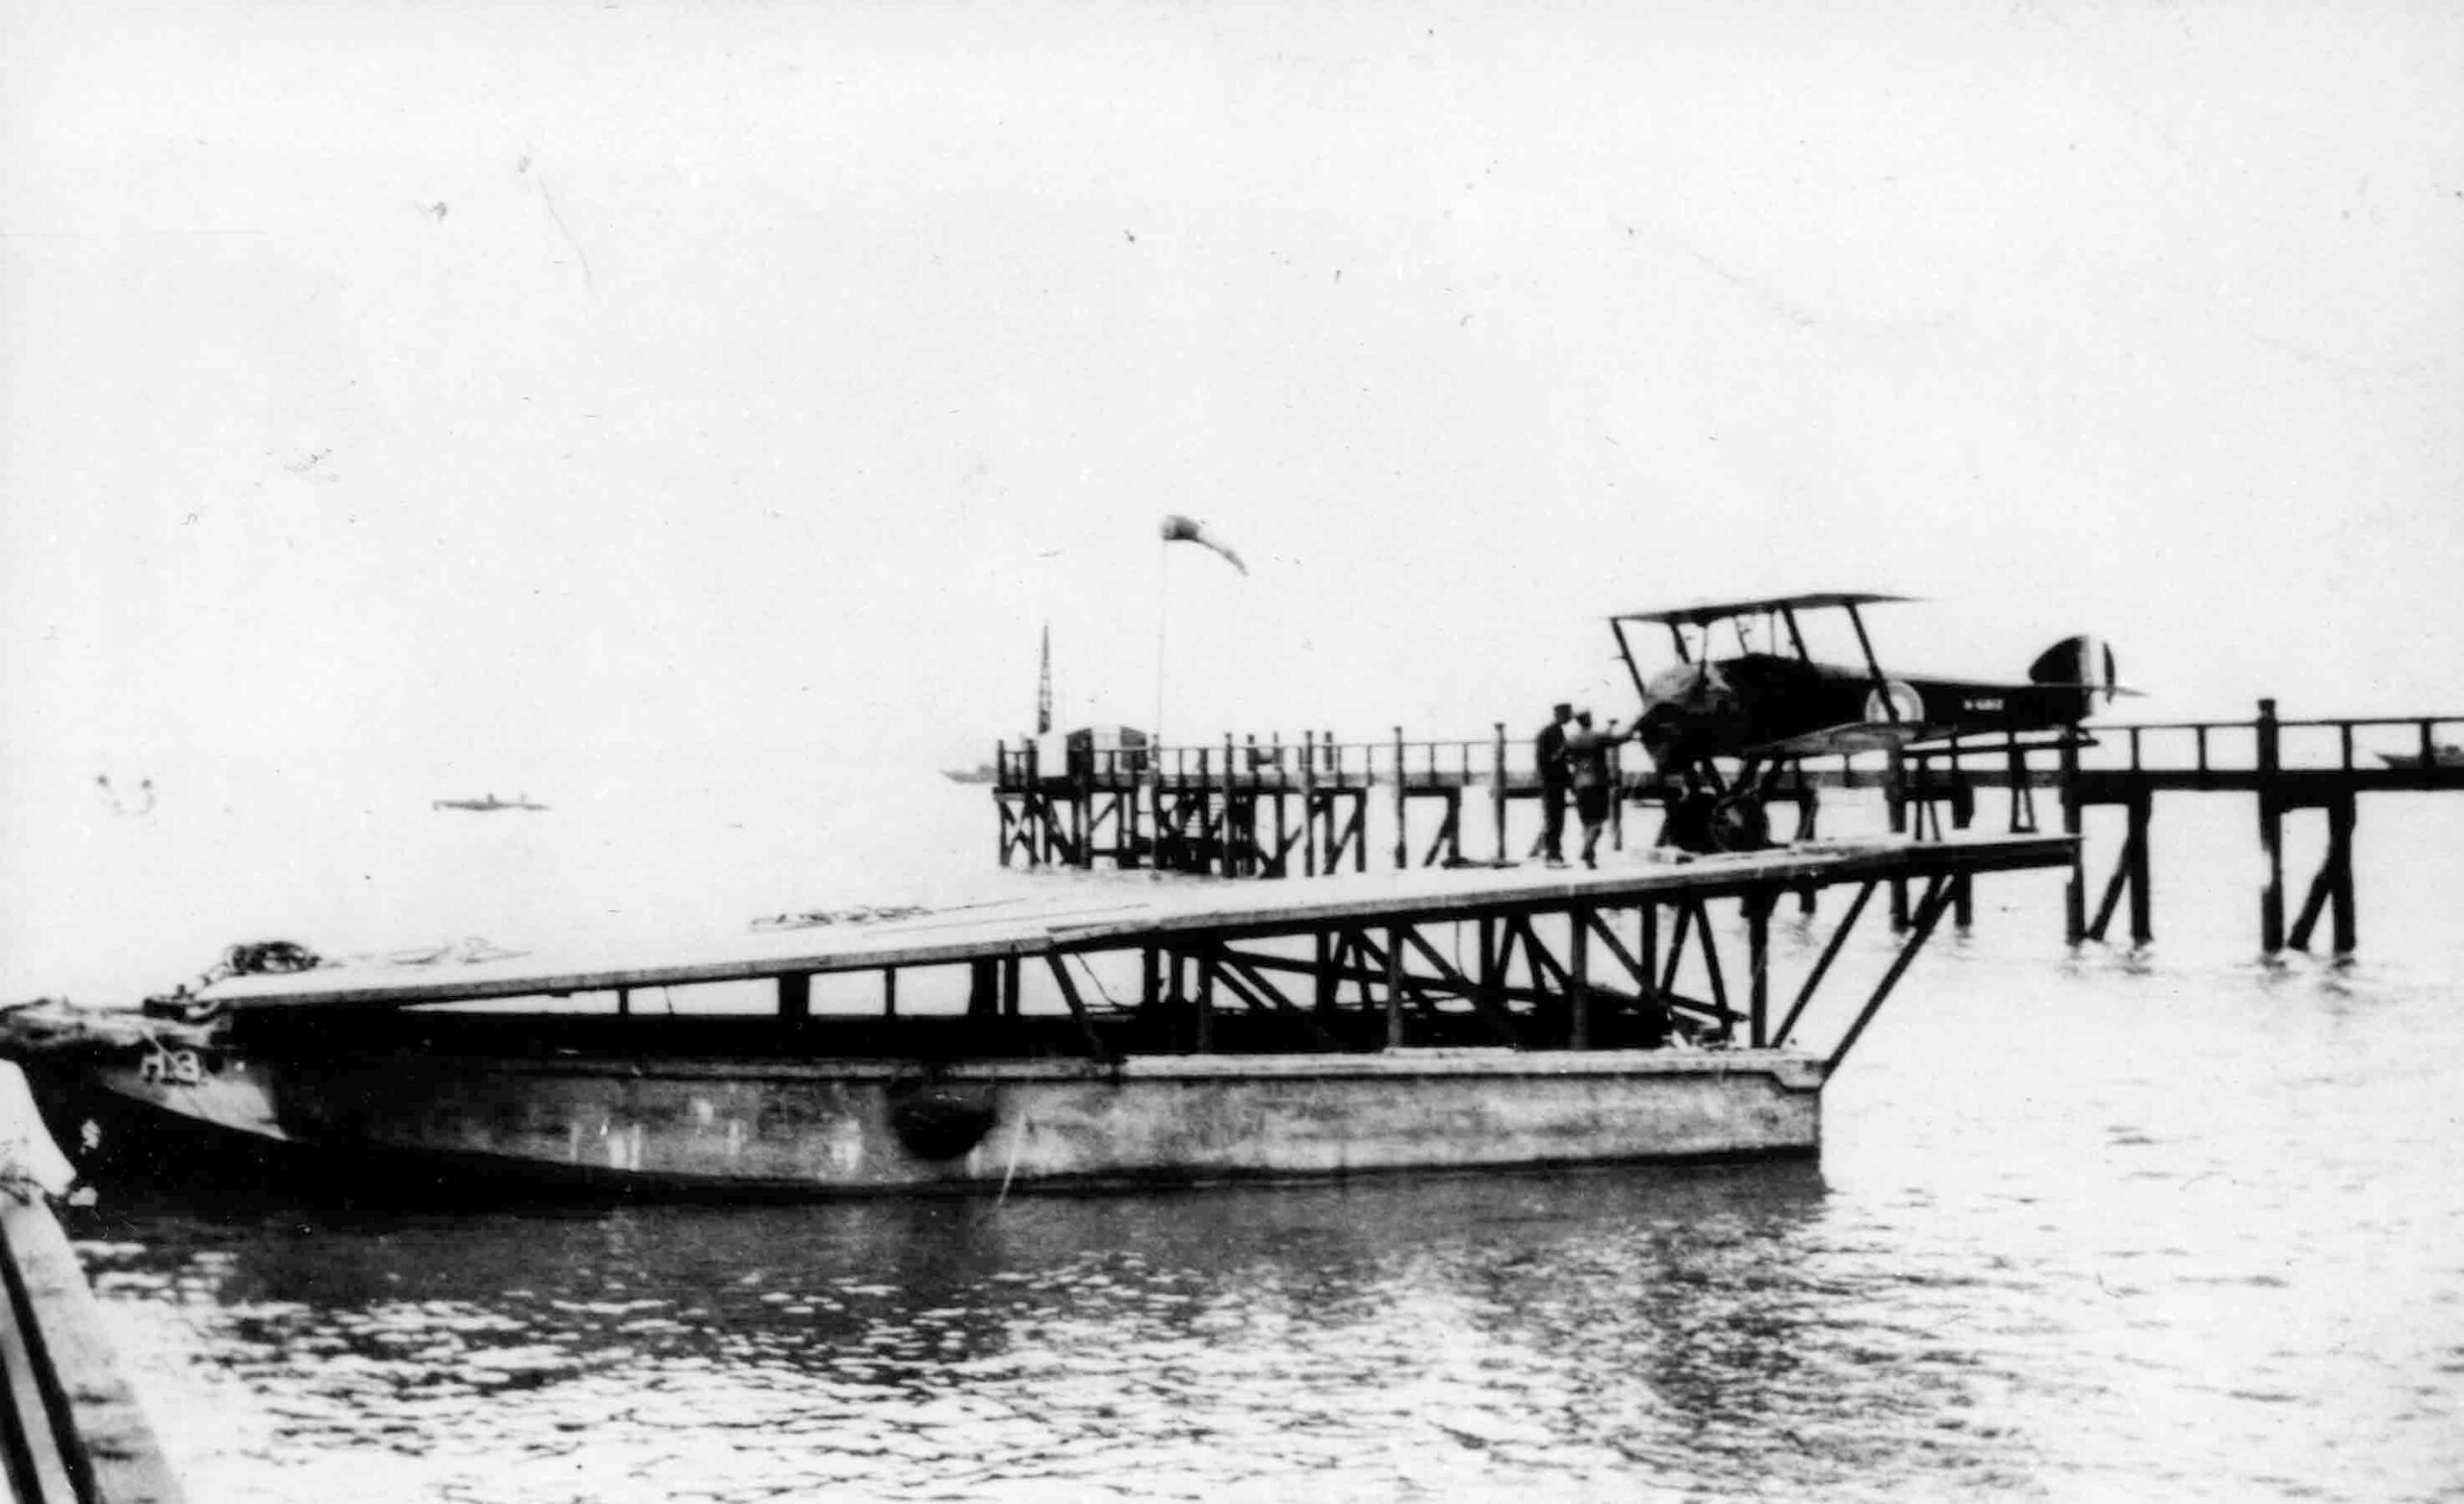 Sopwith 2F1 Camel on board a towed lighter fitted with a flying off platform, July 1918 (RAFM reference: X003-2602/15843)